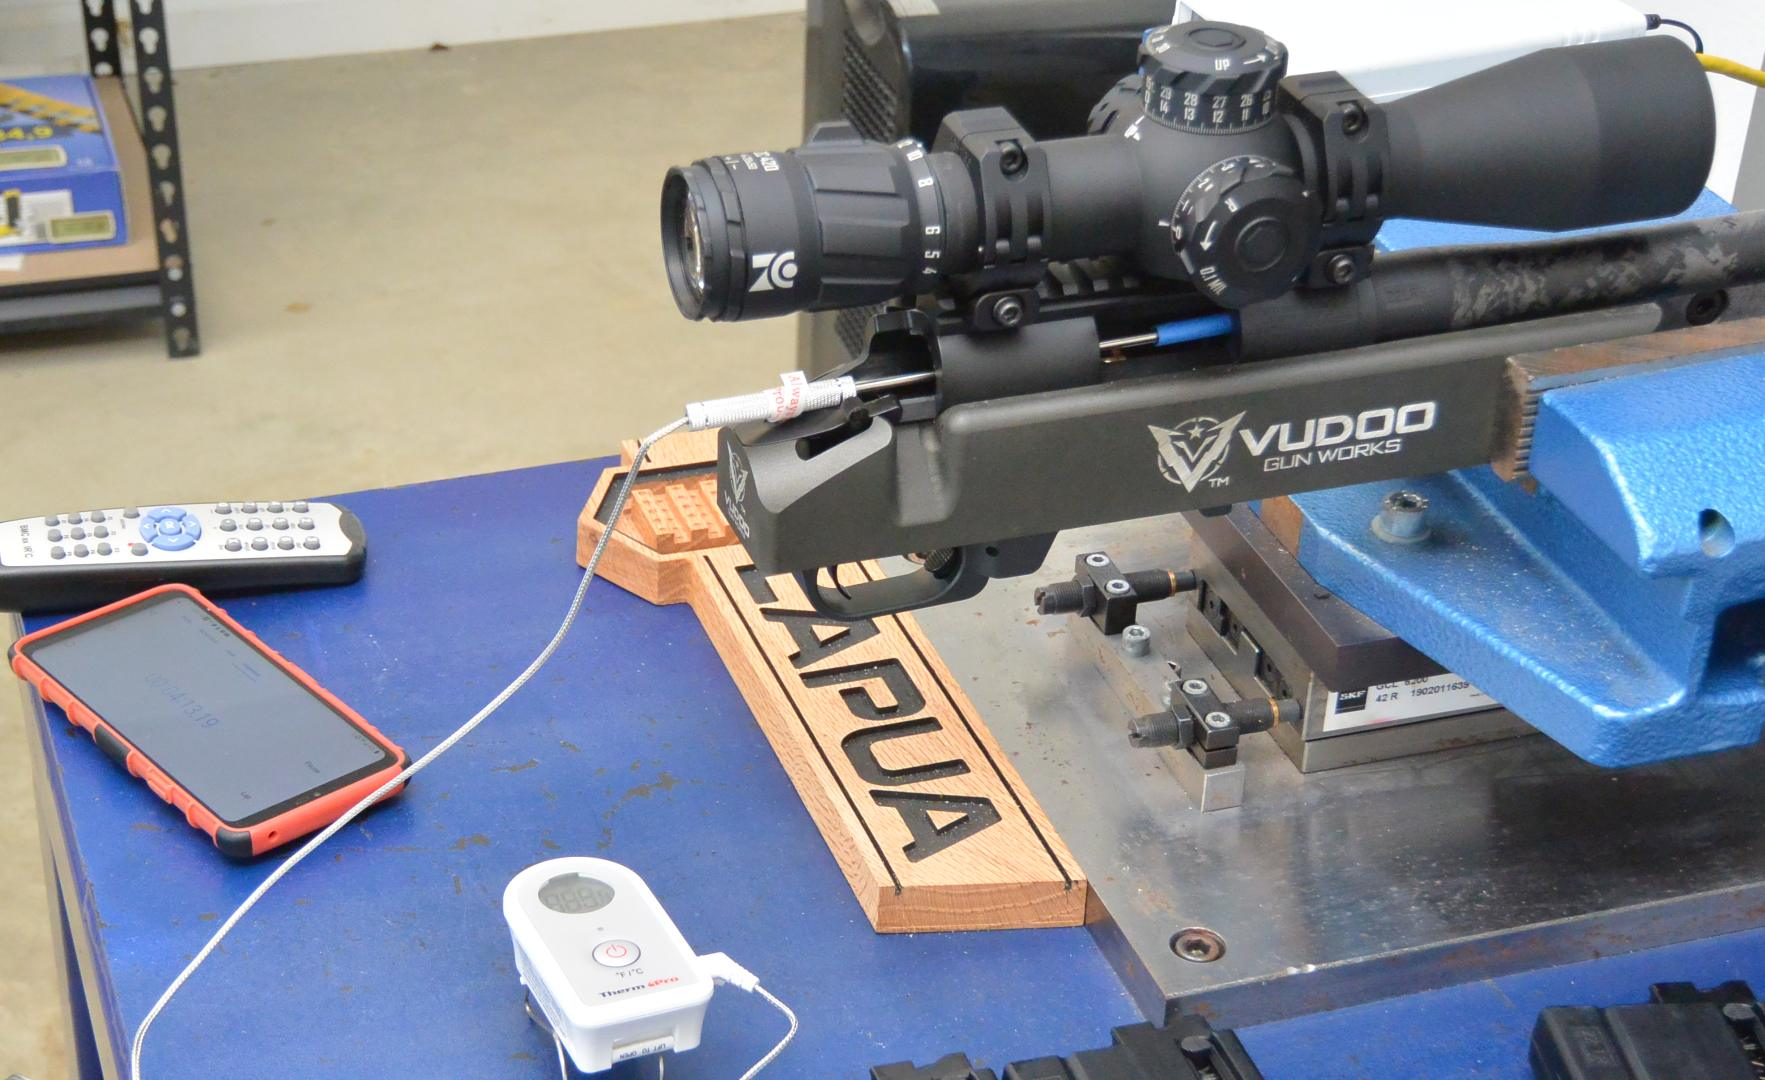 Testing the Cooling Rate of the Proof Carbon Fiber Barreled Vudoo V-22 at the Lapua Test Center